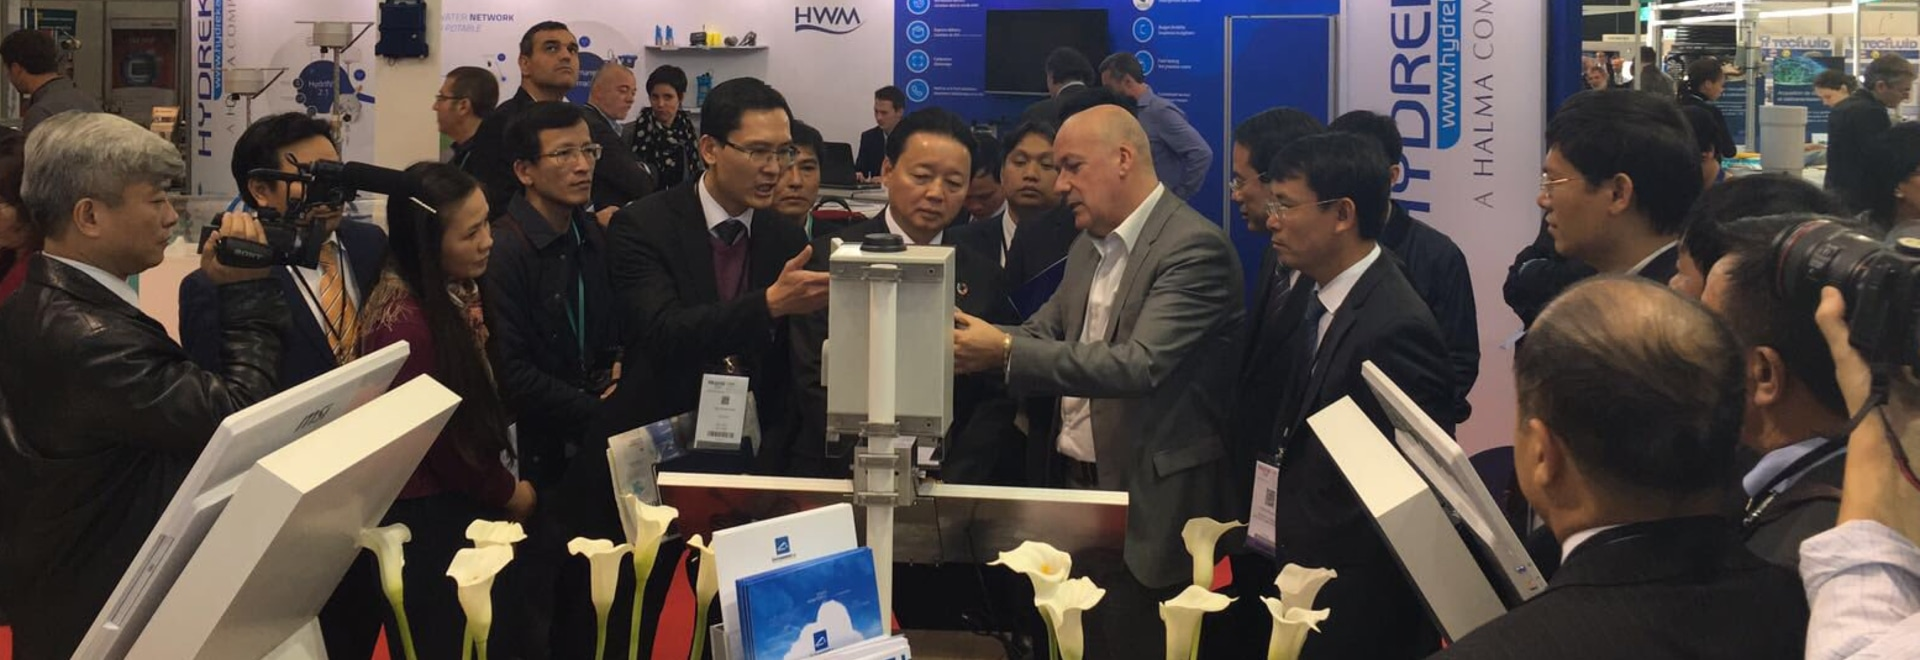 ENVEA, an international group at the forefront of innovation in all aspects of environmental and process measurement.